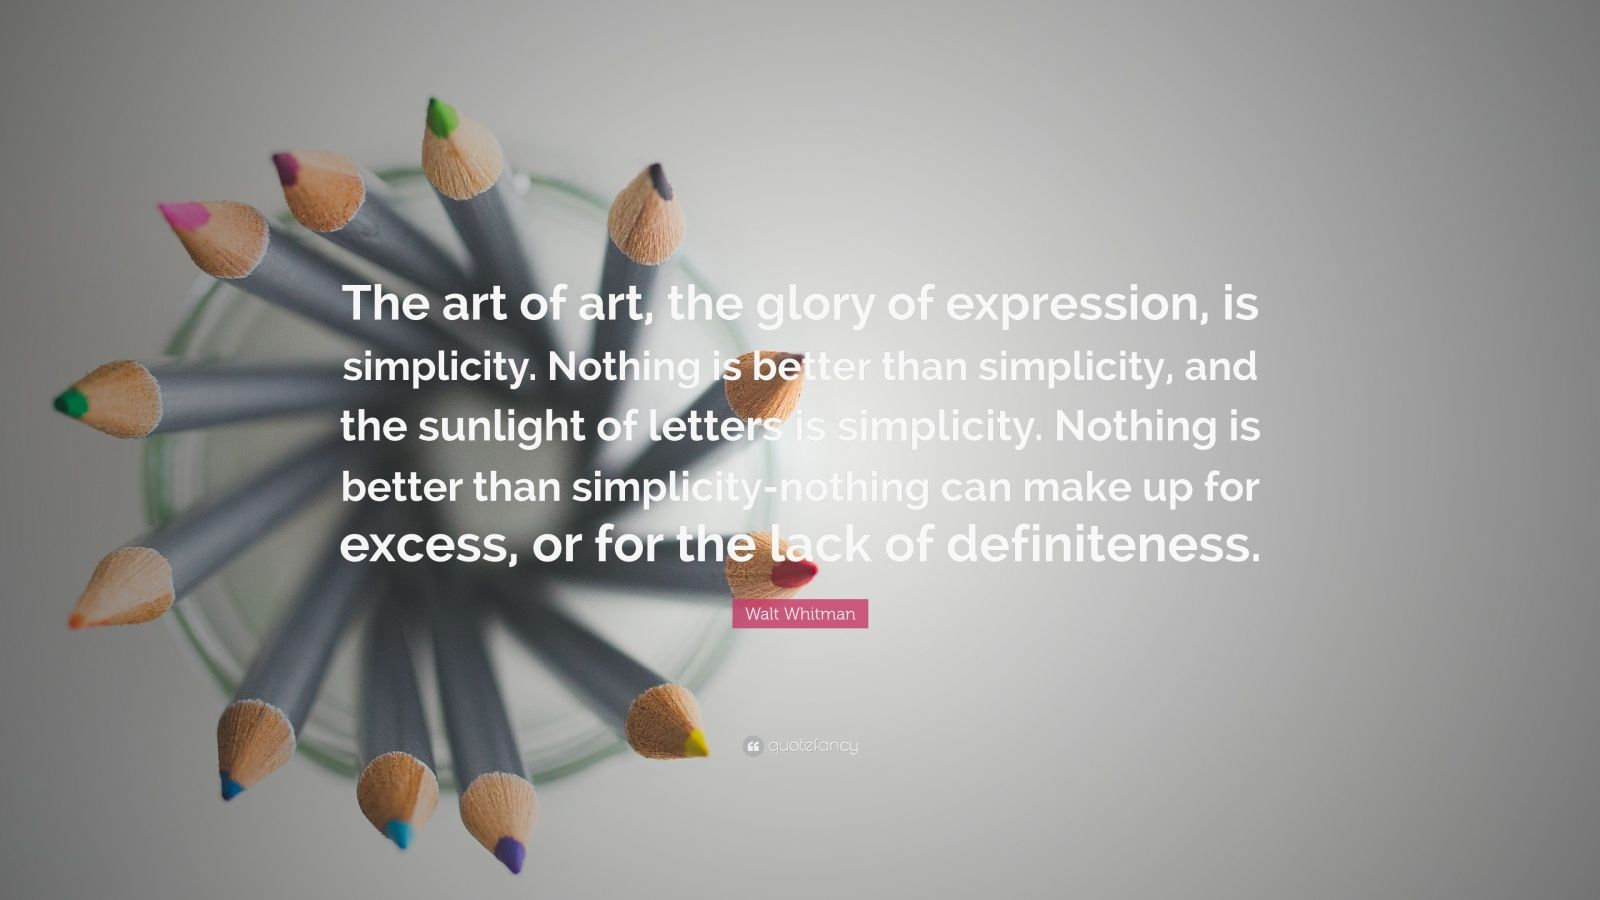 """Walt Whitman Quote: """"The art of art, the glory of expression, is simplicity. Nothing is better than simplicity, and the sunlight of letters is simplicity. Nothing is better than simplicity-nothing can make up for excess, or for the lack of definiteness."""""""